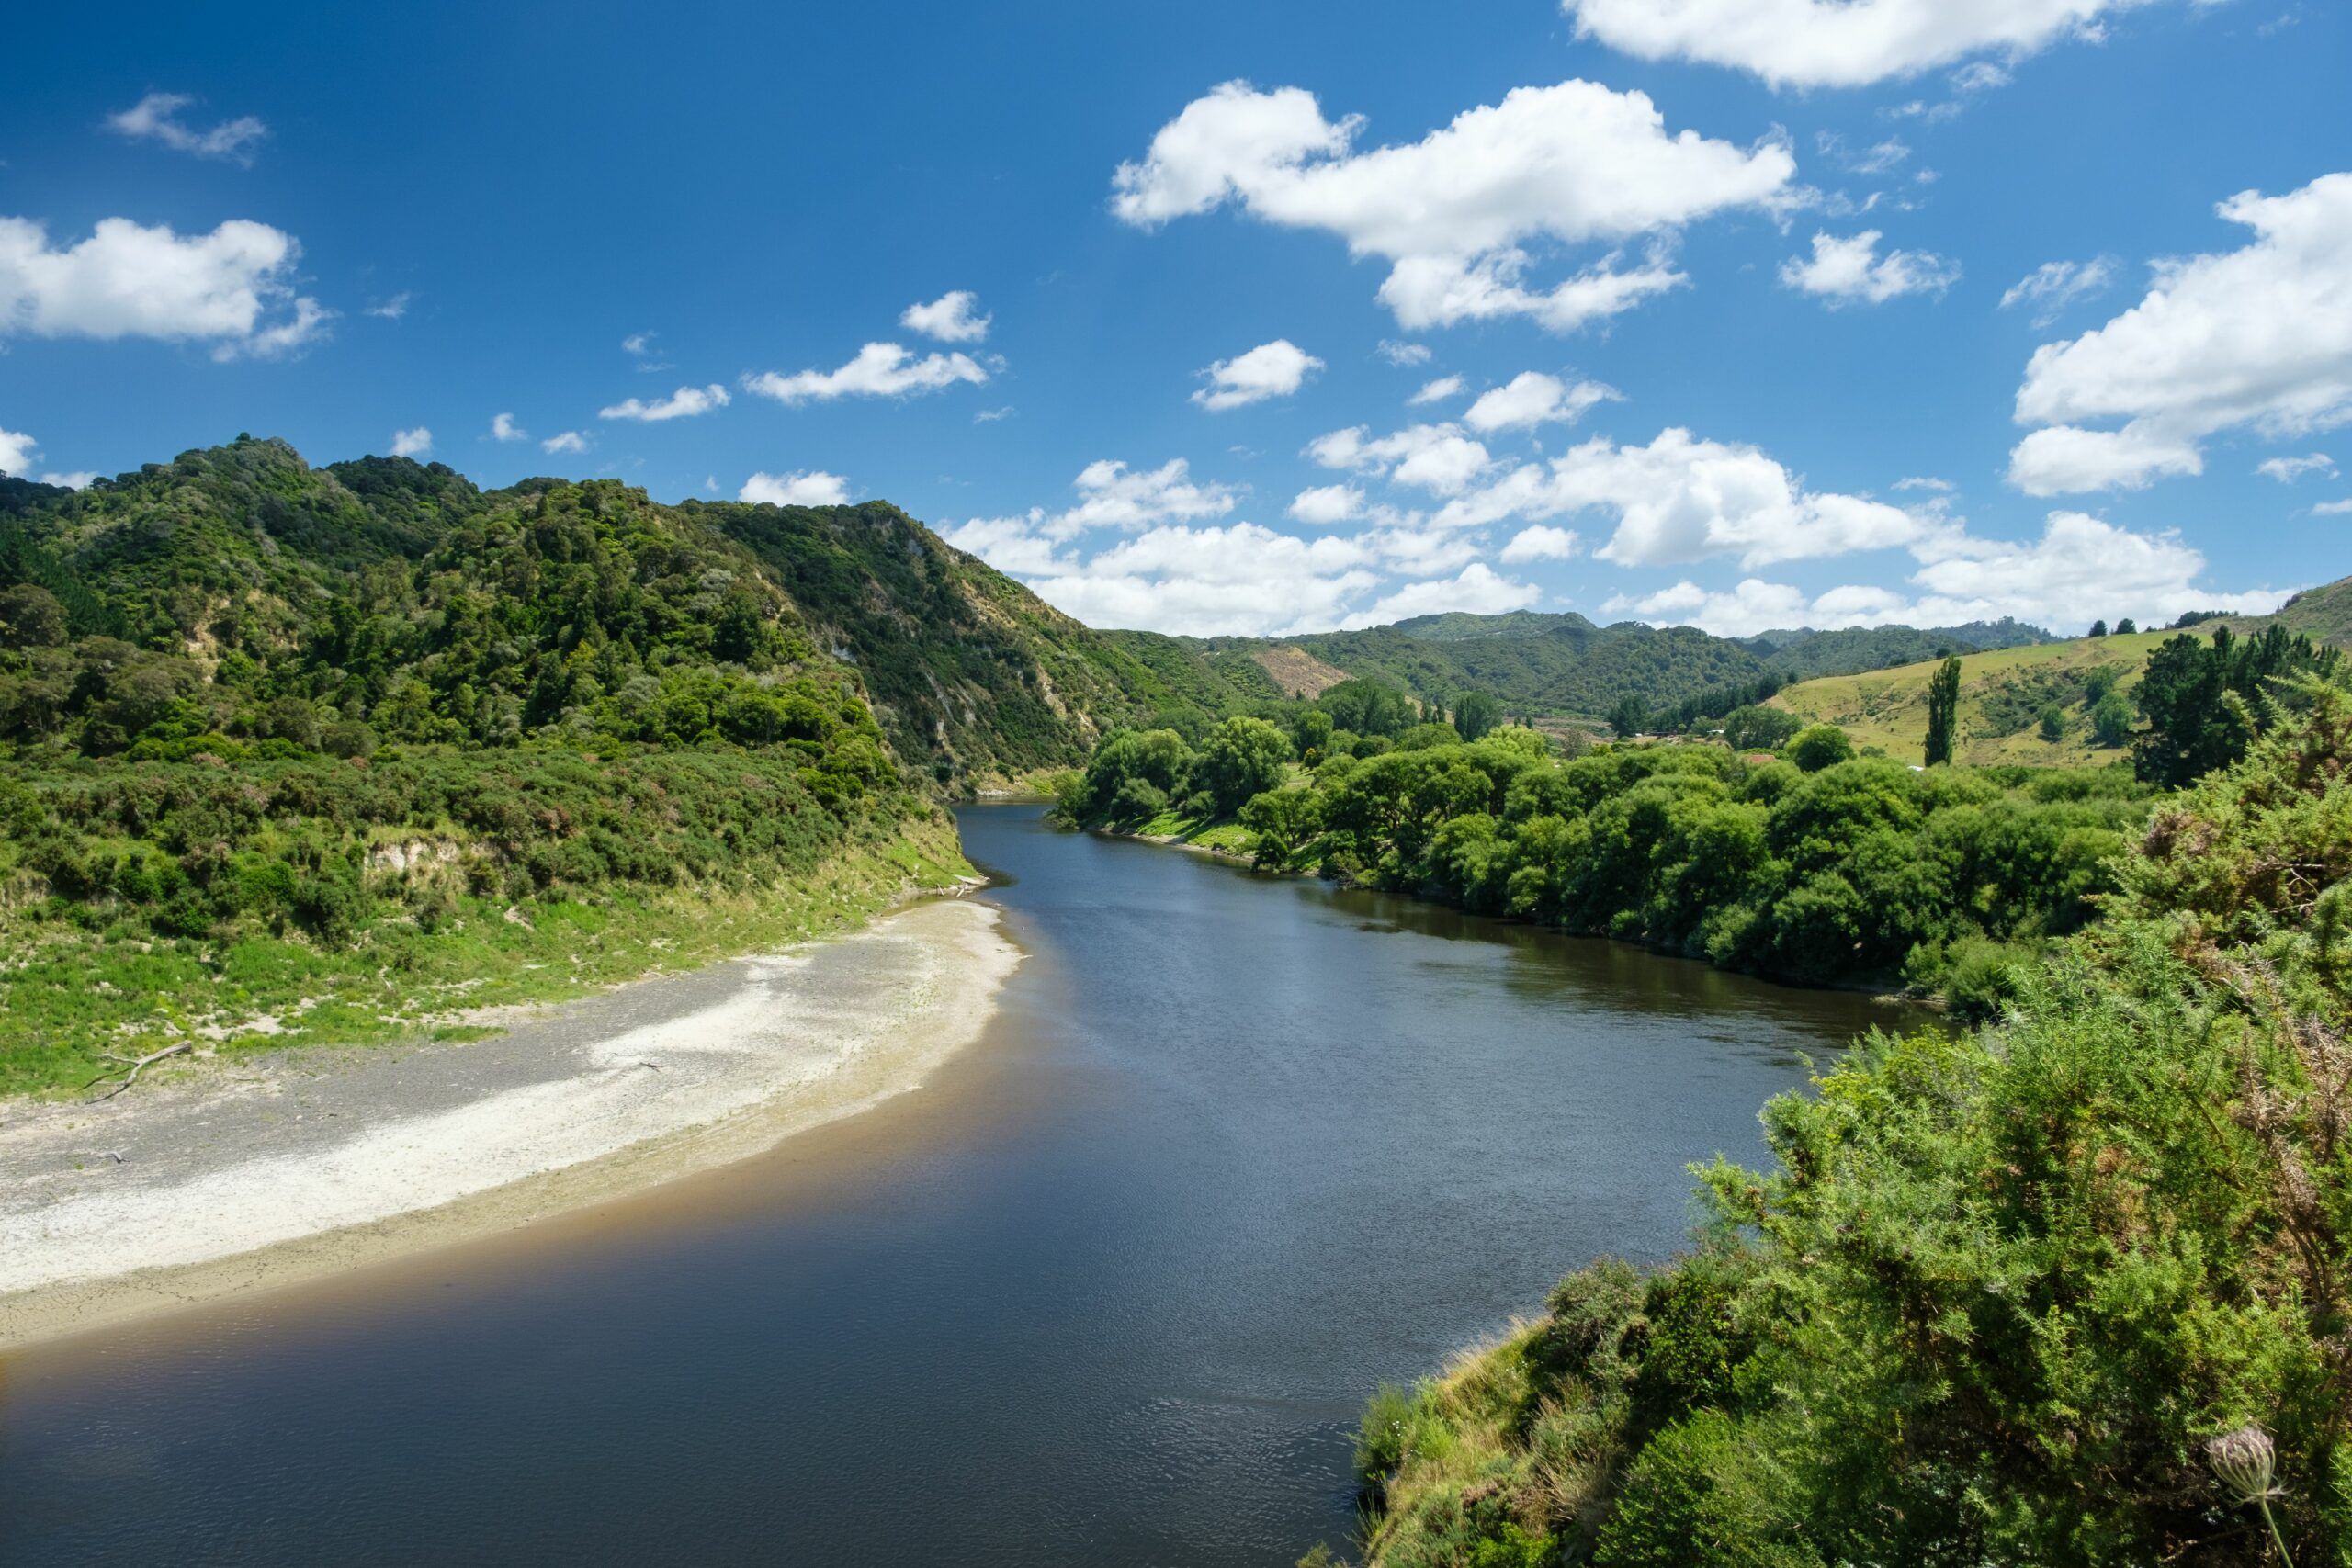 The Whanganui River near the entrance to Whanganui National Park, near Whanganui, North Island, New Zealand. Credit: Matthew Lovette/Education Images/Universal Images Group via Getty Images